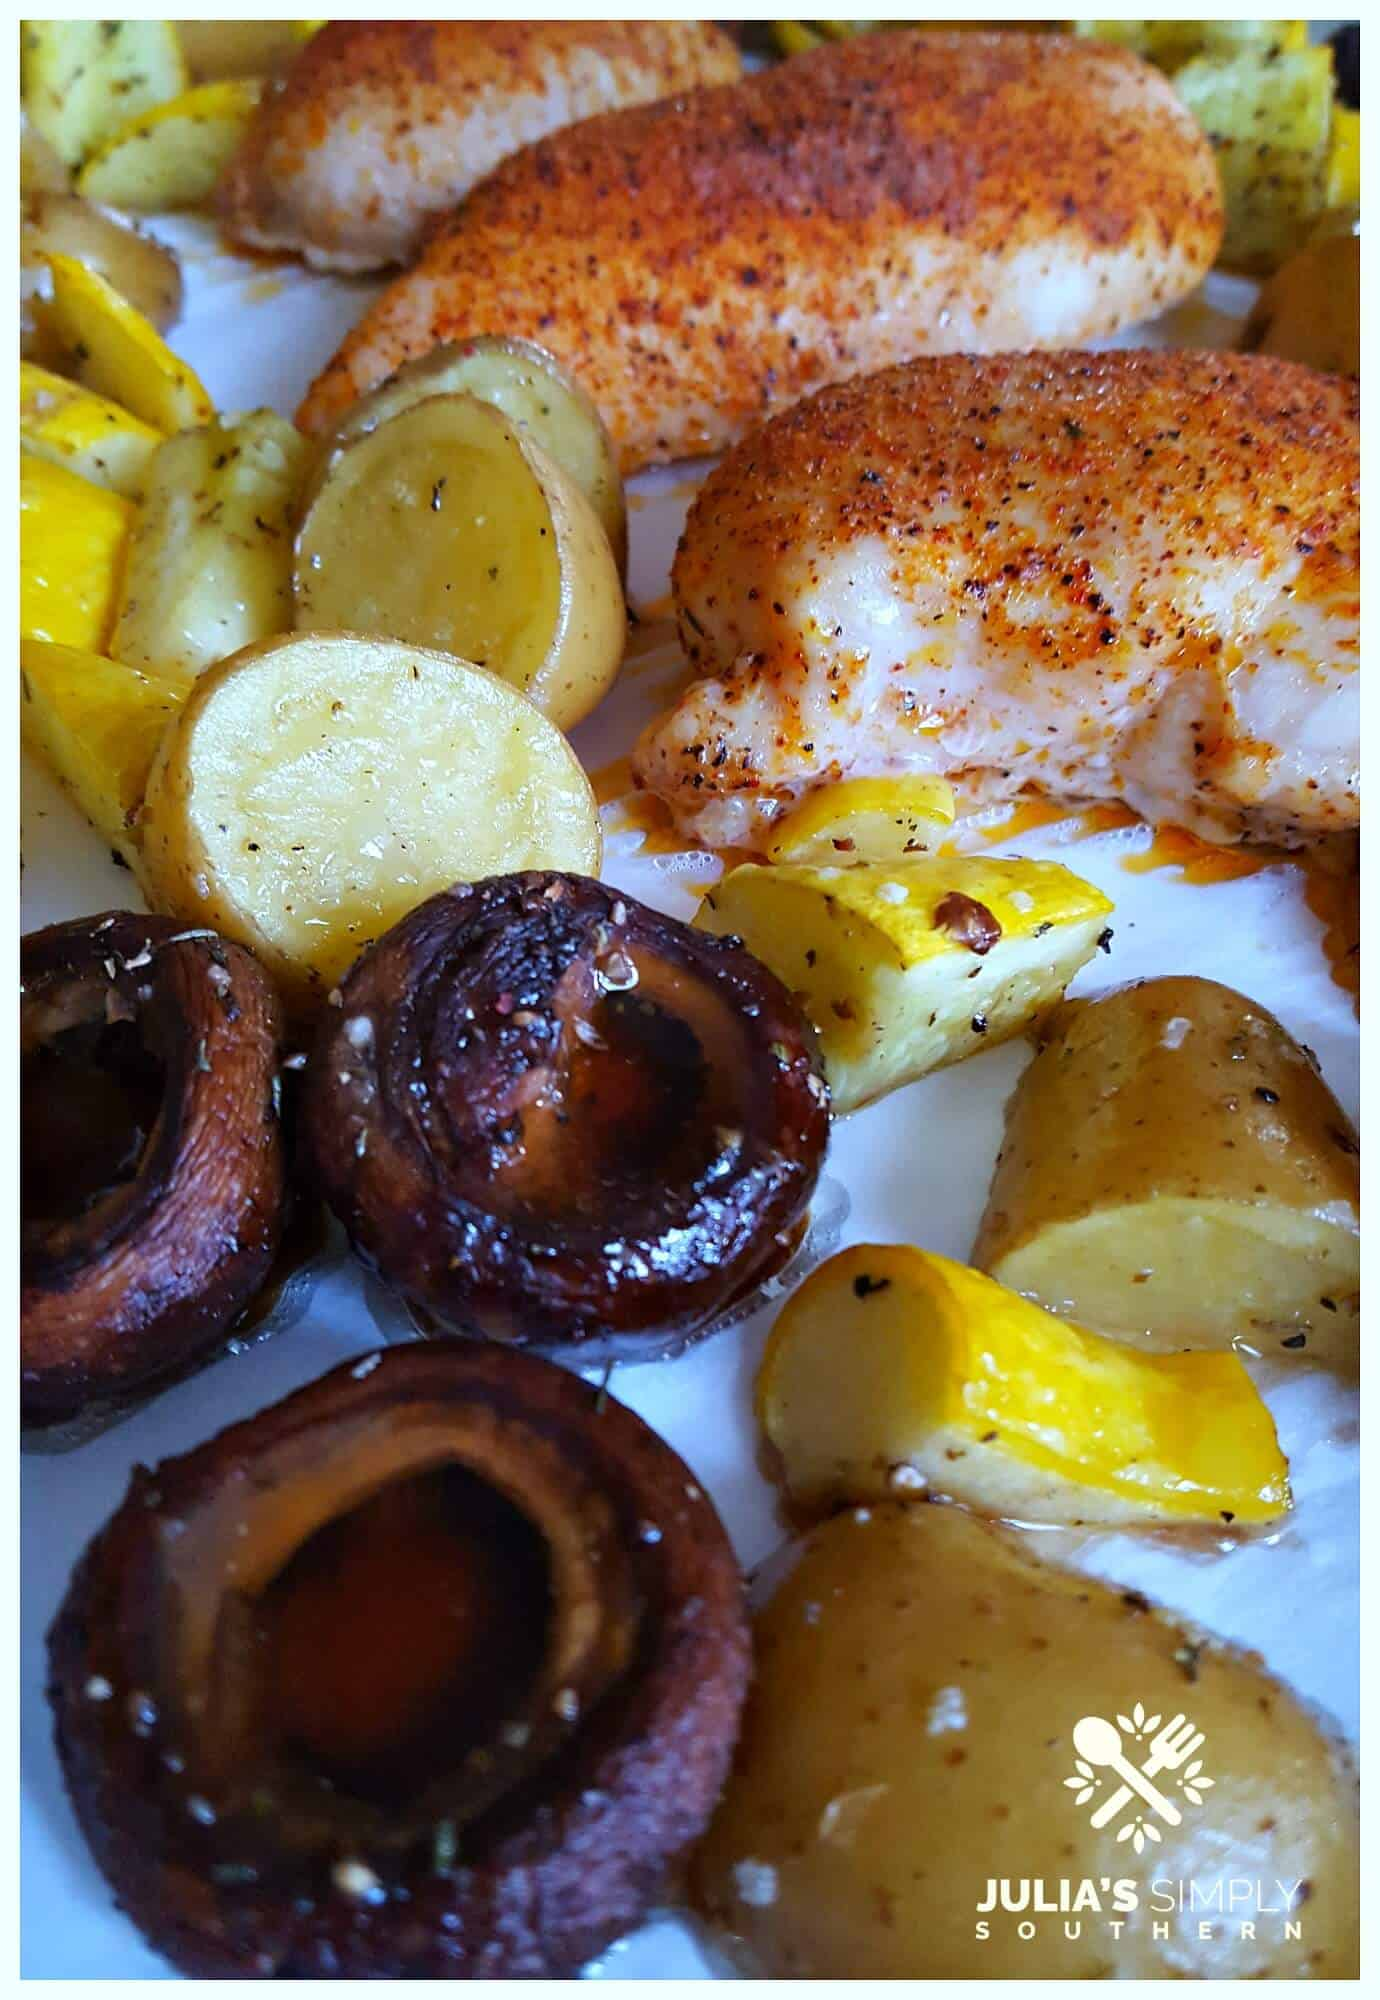 Creole-Chicken-with-roasted-mushrooms-yellow-squash-potatoes-sheet-pan-meal-Julias-Simply-Southern